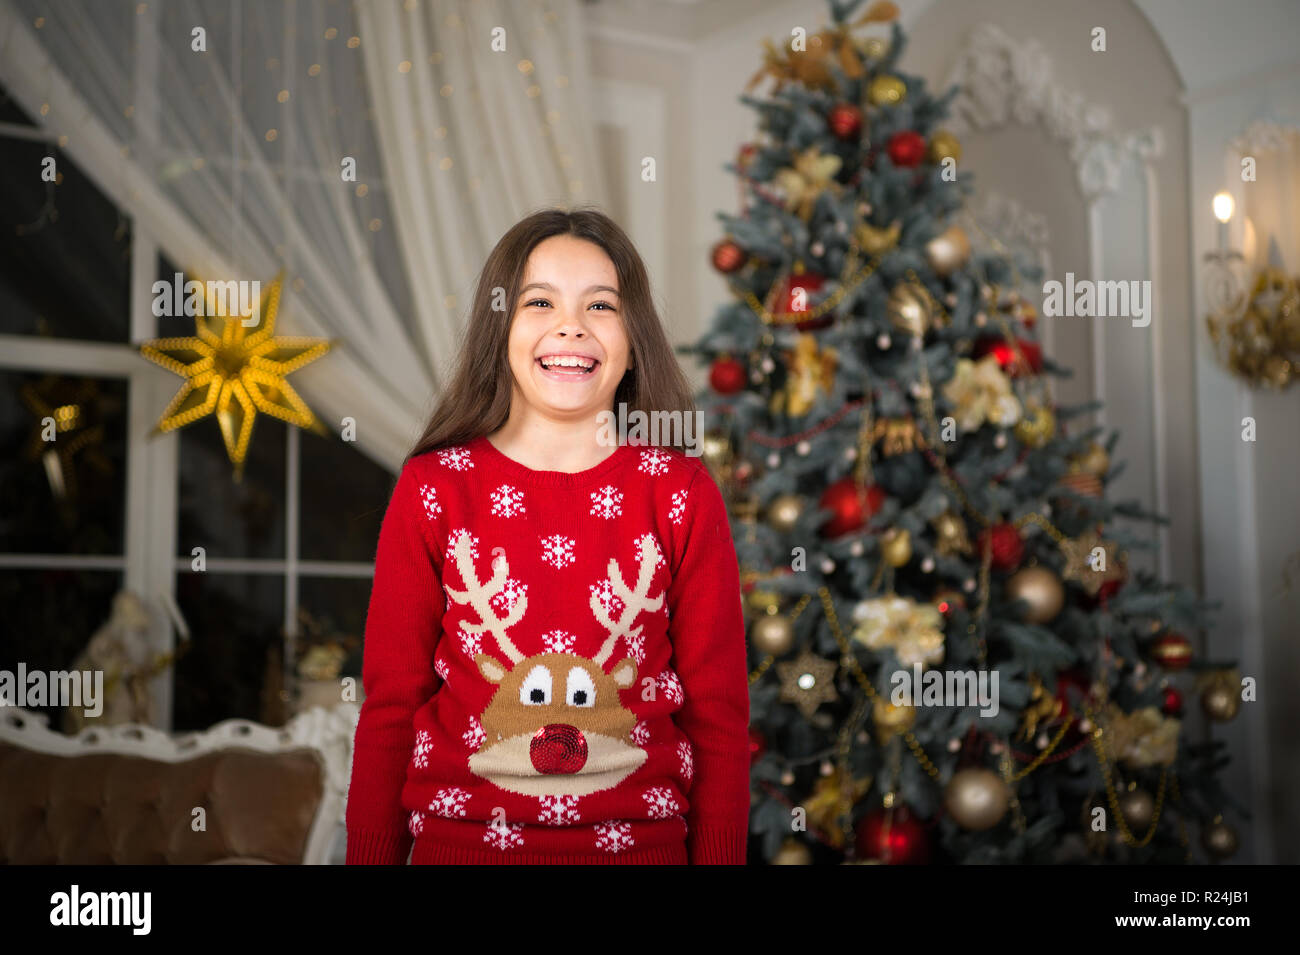 little child girl likes xmas present. New year new goals. The morning before Xmas. New year holiday. Christmas. Kid enjoy the holiday. Happy new year. small happy girl at christmas. happy smile. - Stock Image